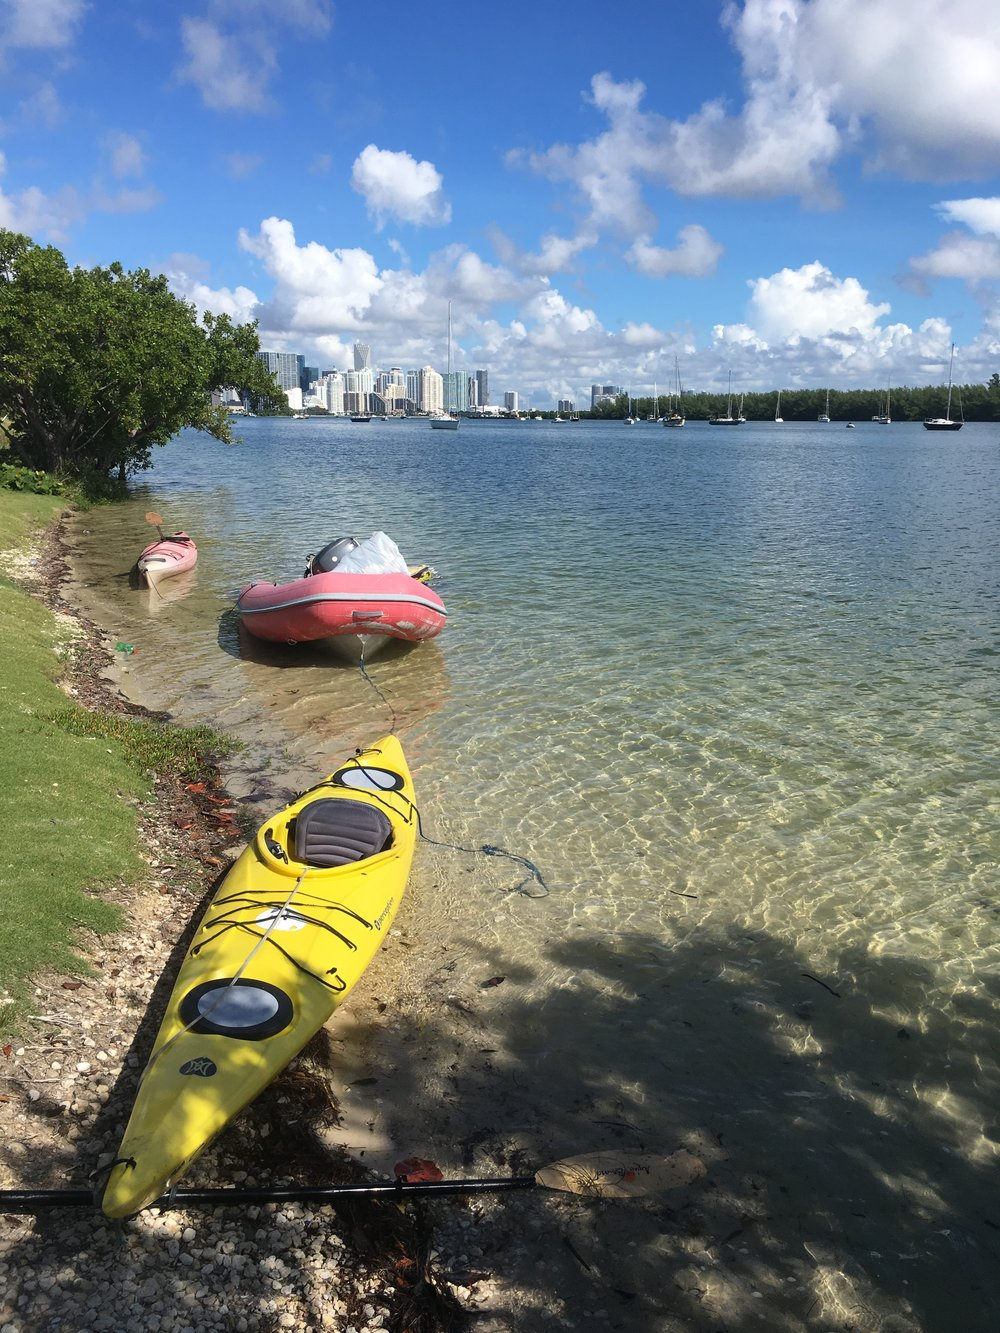 Thursday Sept 7, 2017 around noon I paddled ashore with dinghy and my other kayak in tow.